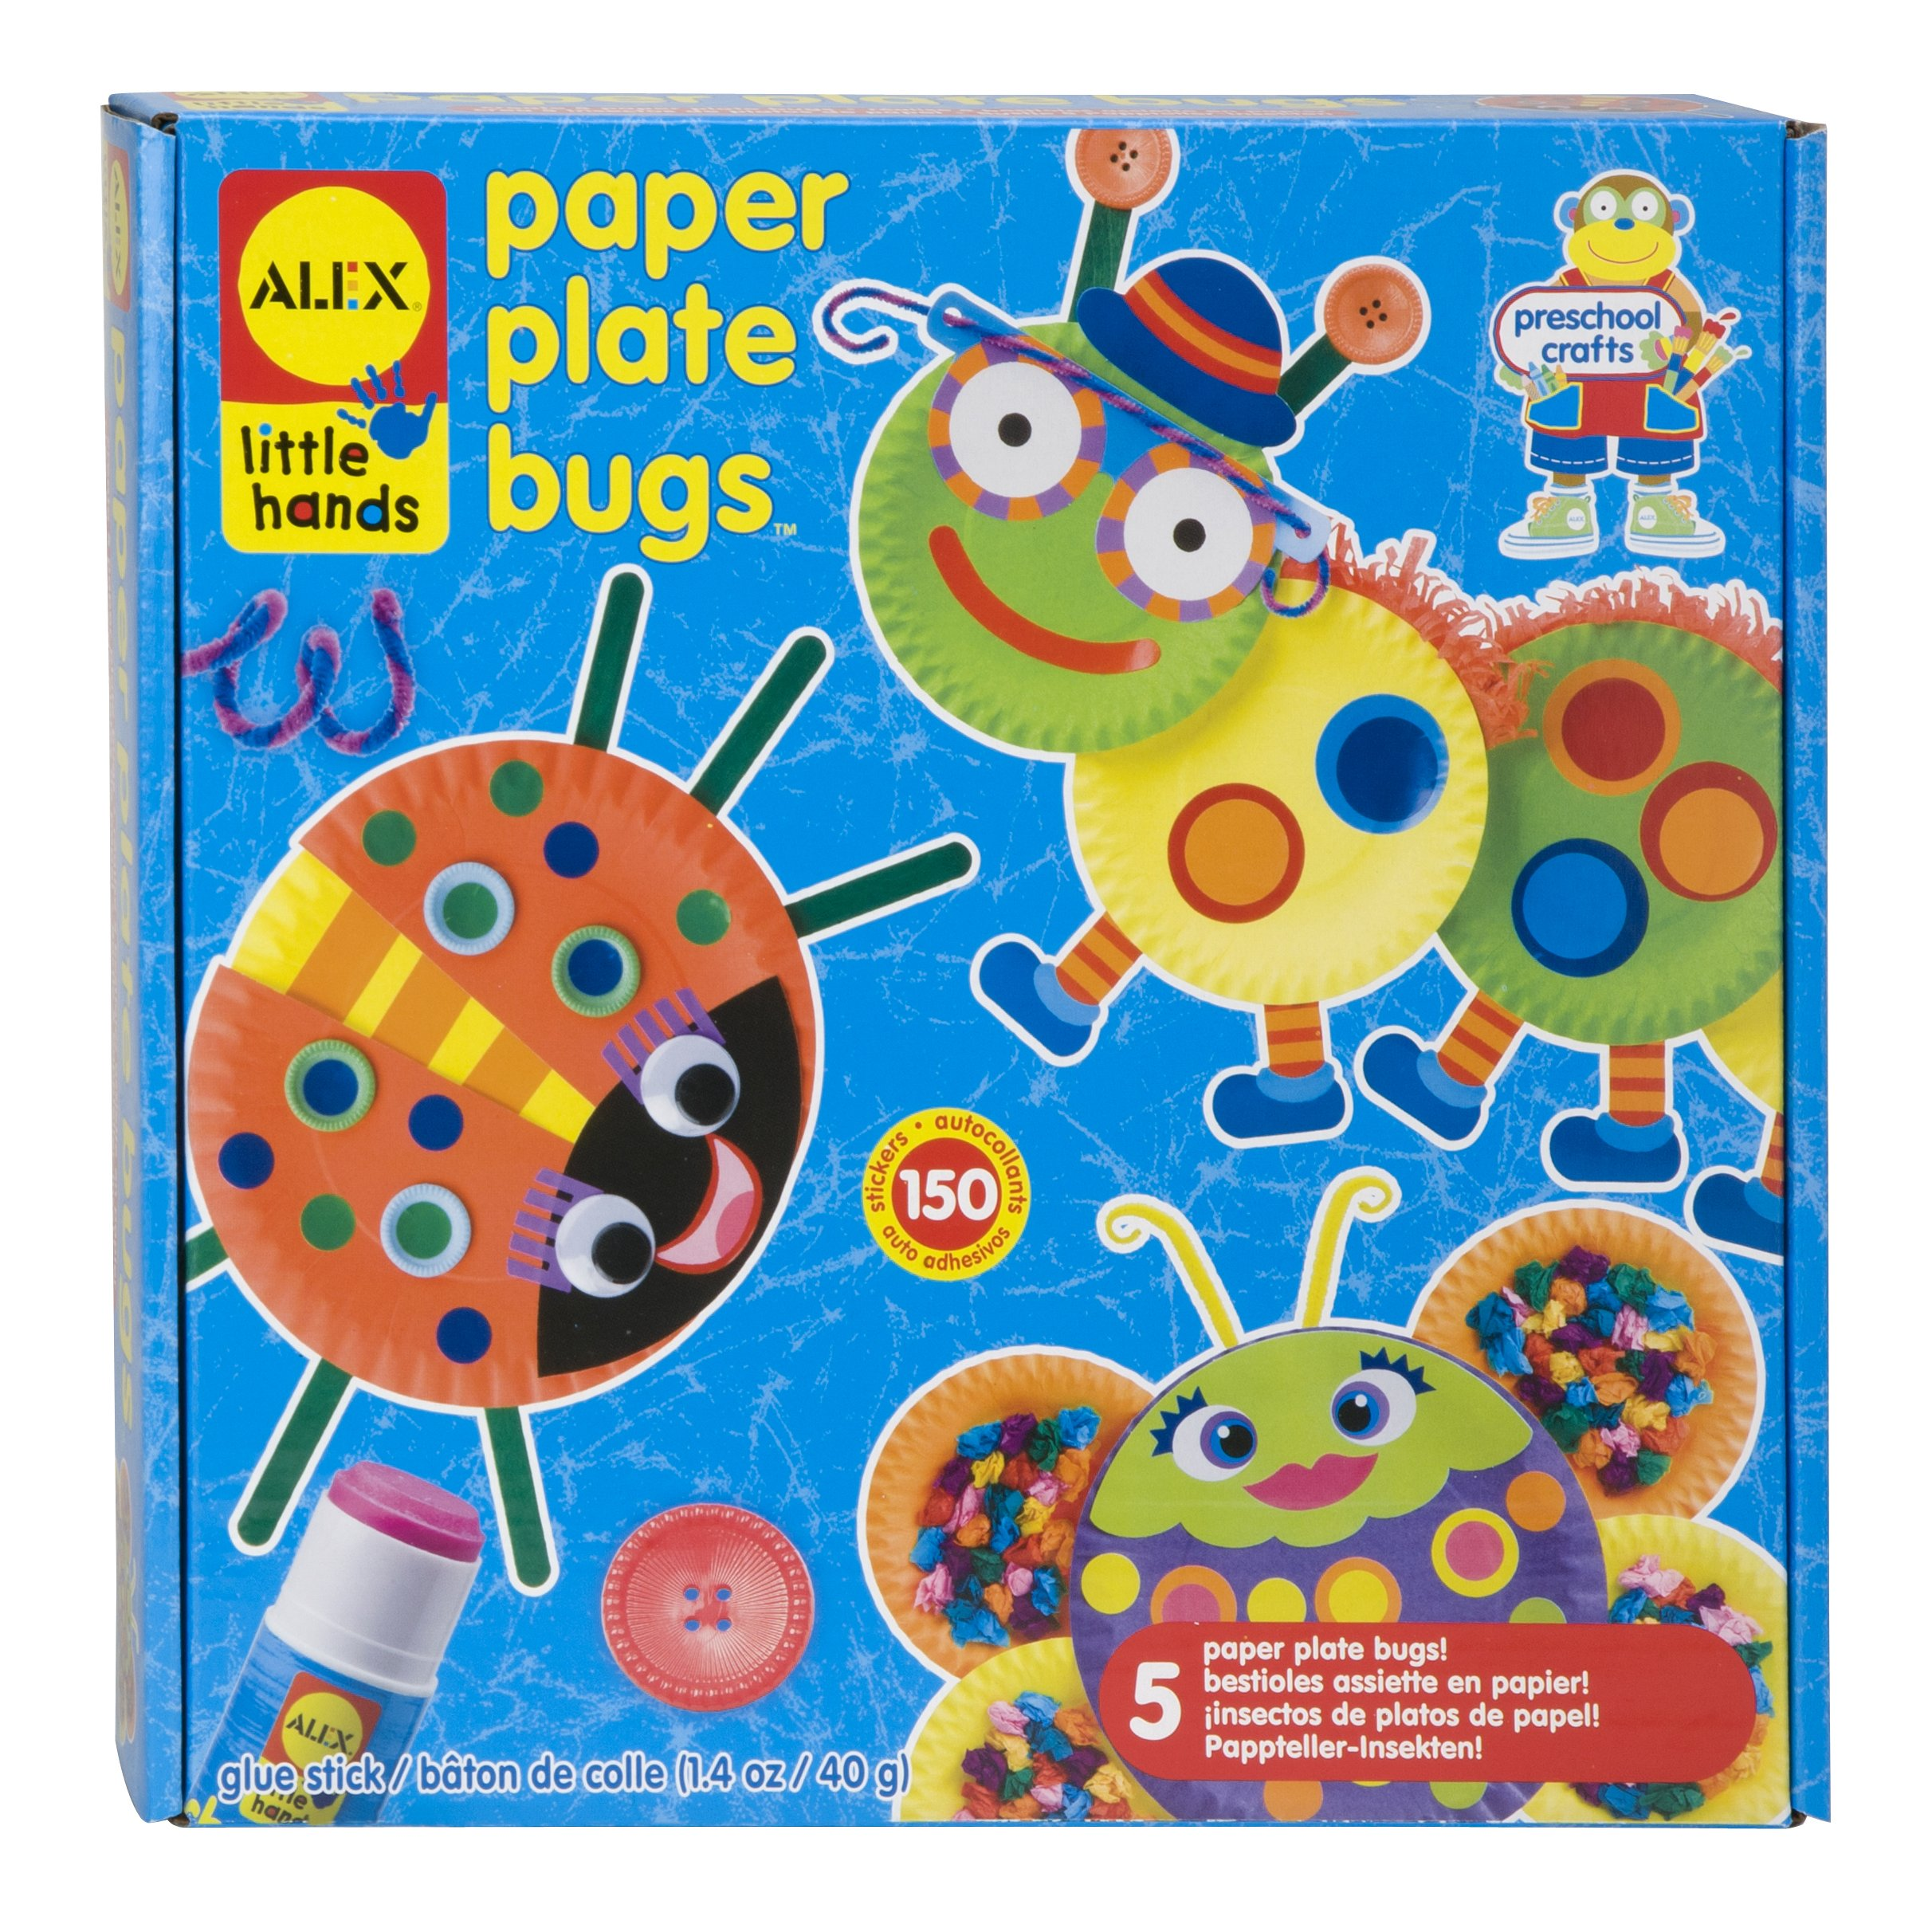 ALEX Toys Little Hands Paper Plate Bugs by ALEX Toys